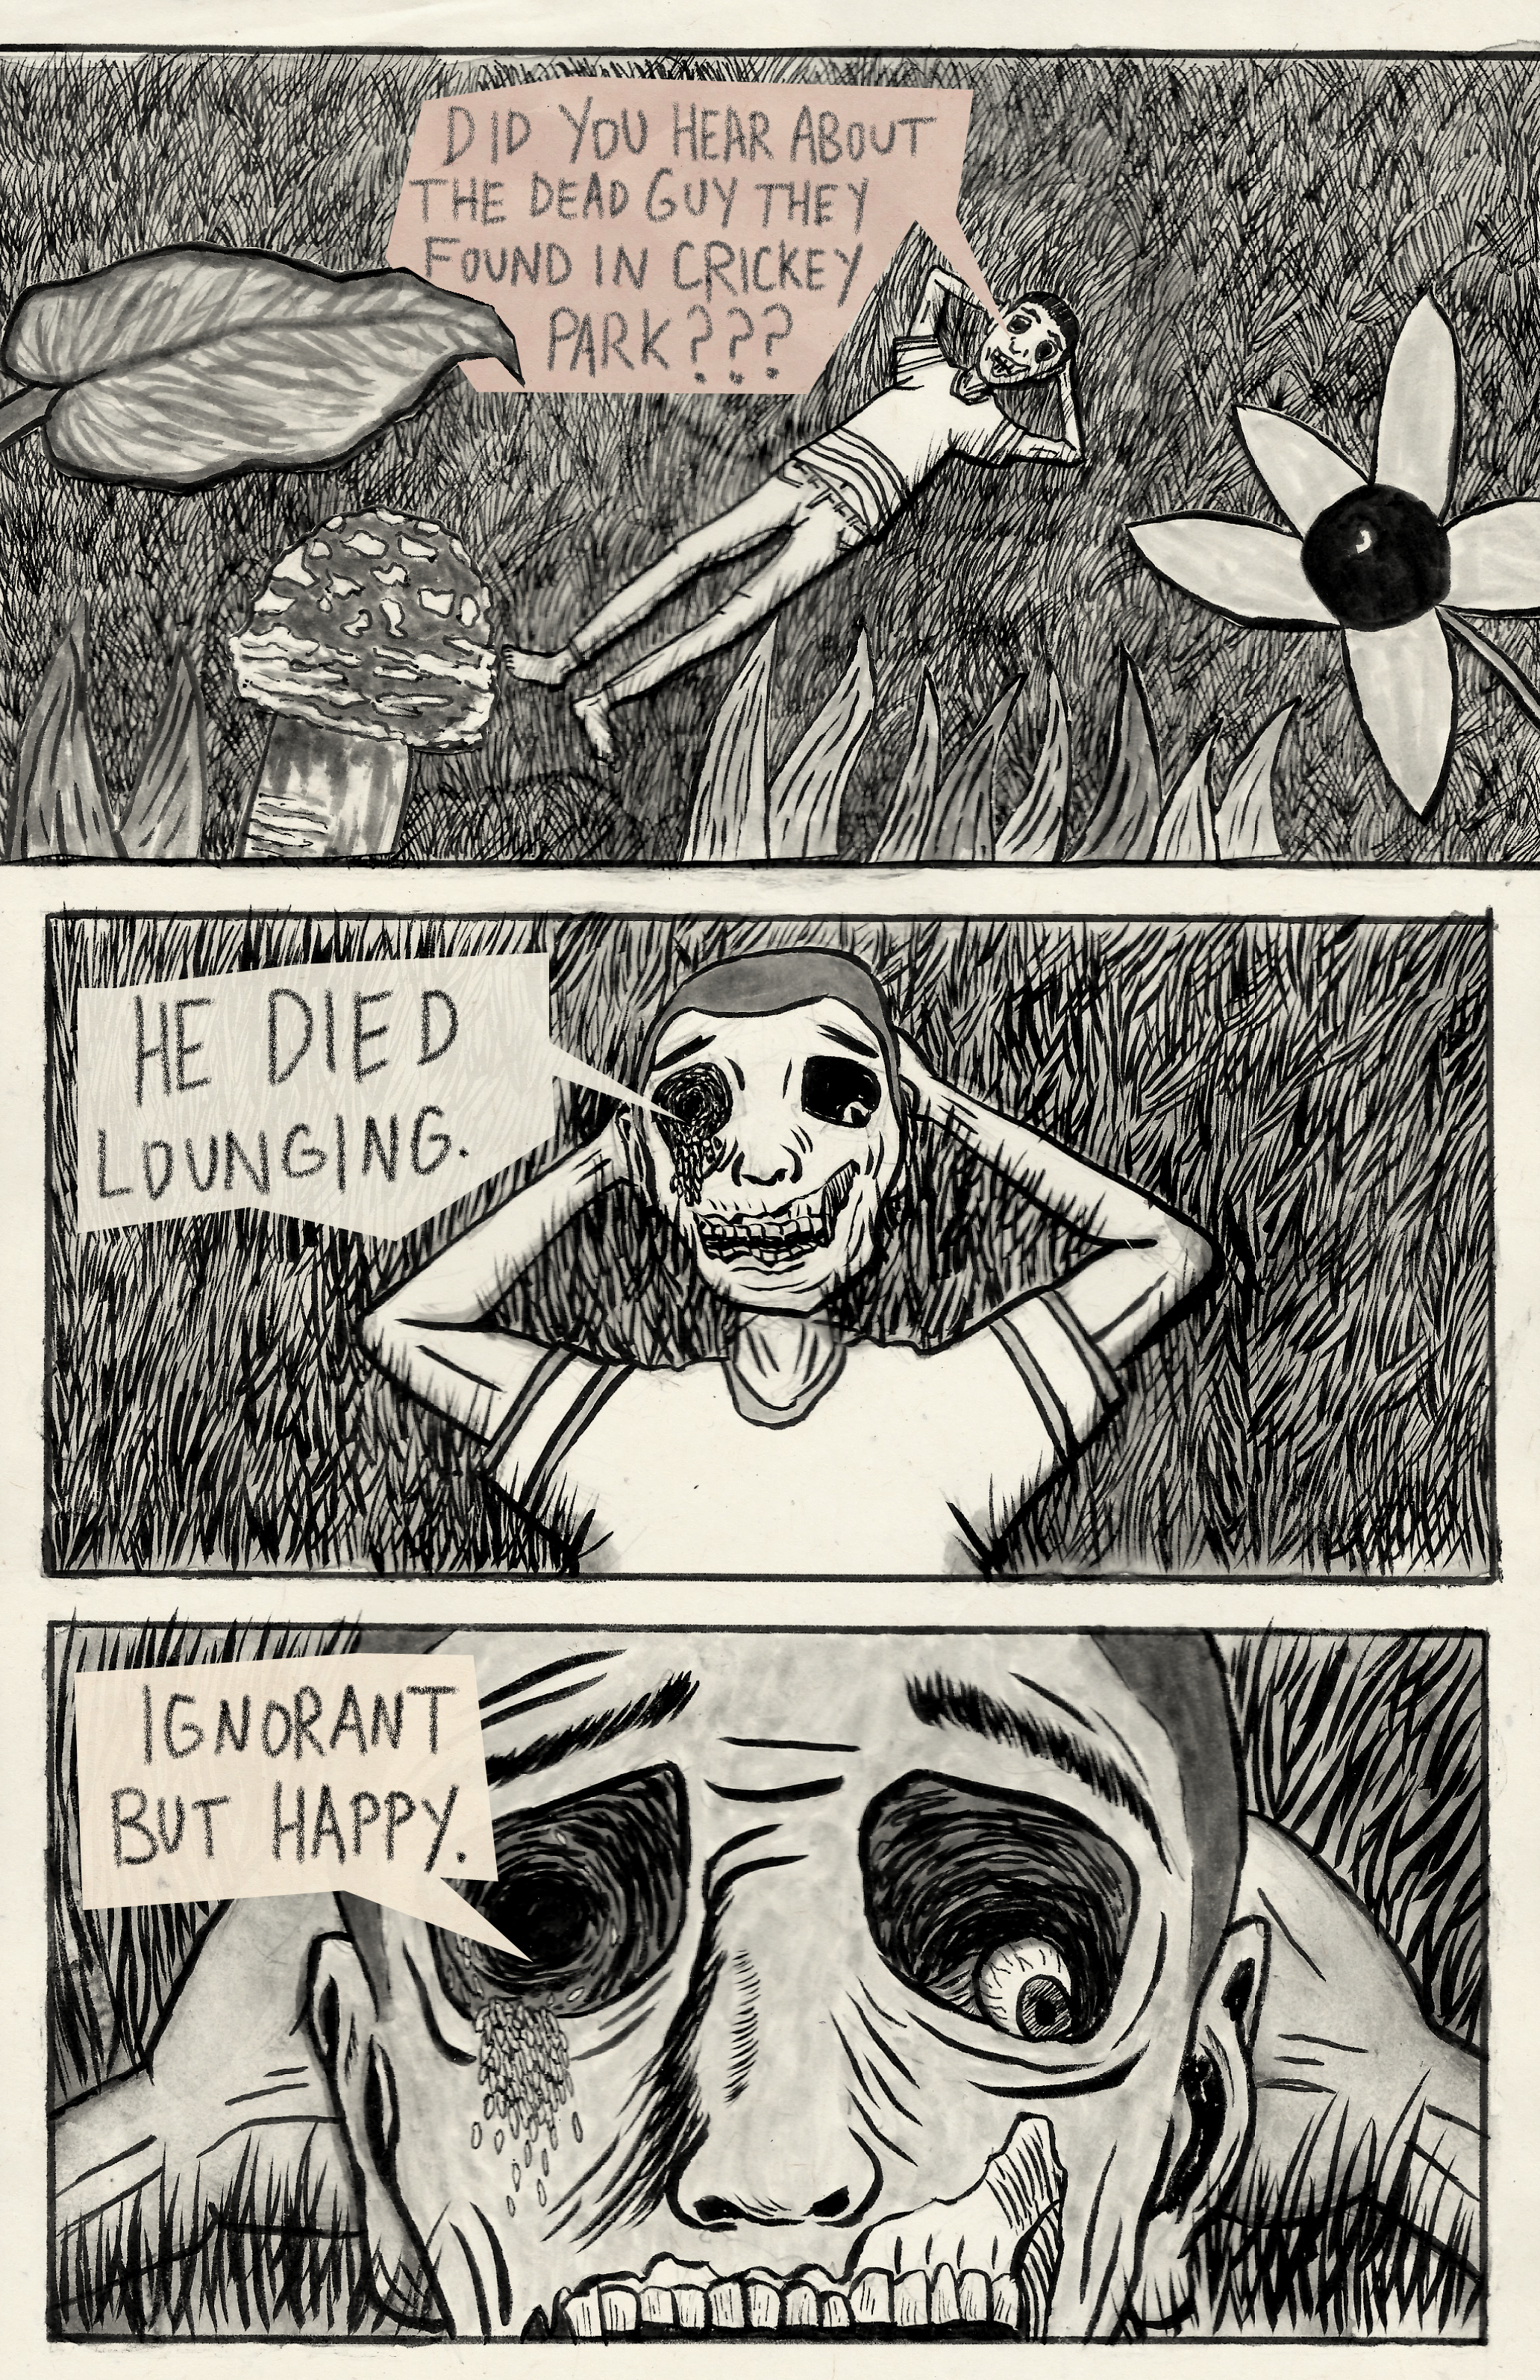 ink drawn comic of a prone person decaying in a park